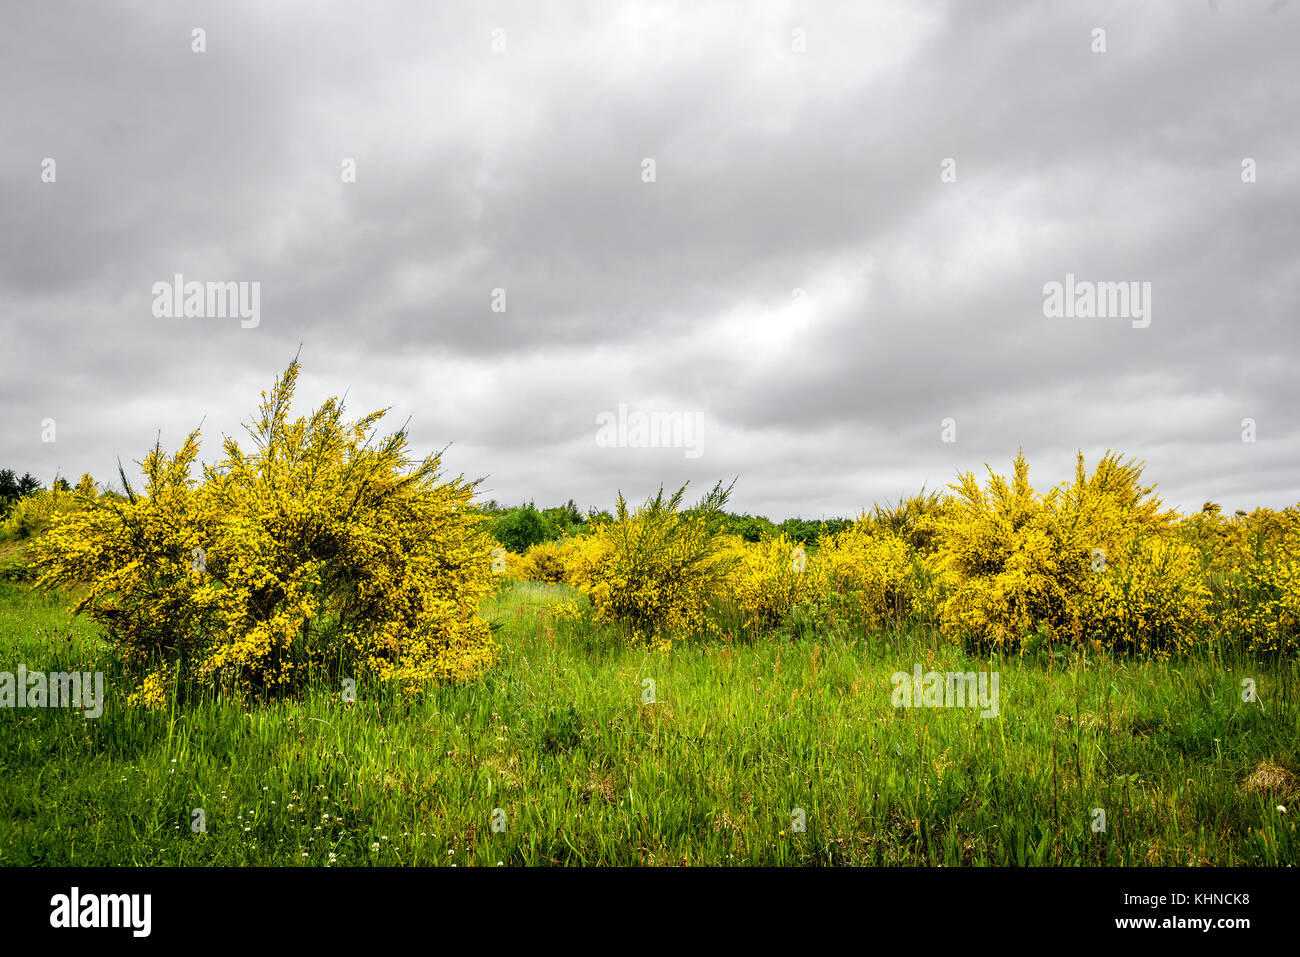 Yellow broom bushes on a green field in cloudy weather in the spring in beautiful yellow colors - Stock Image